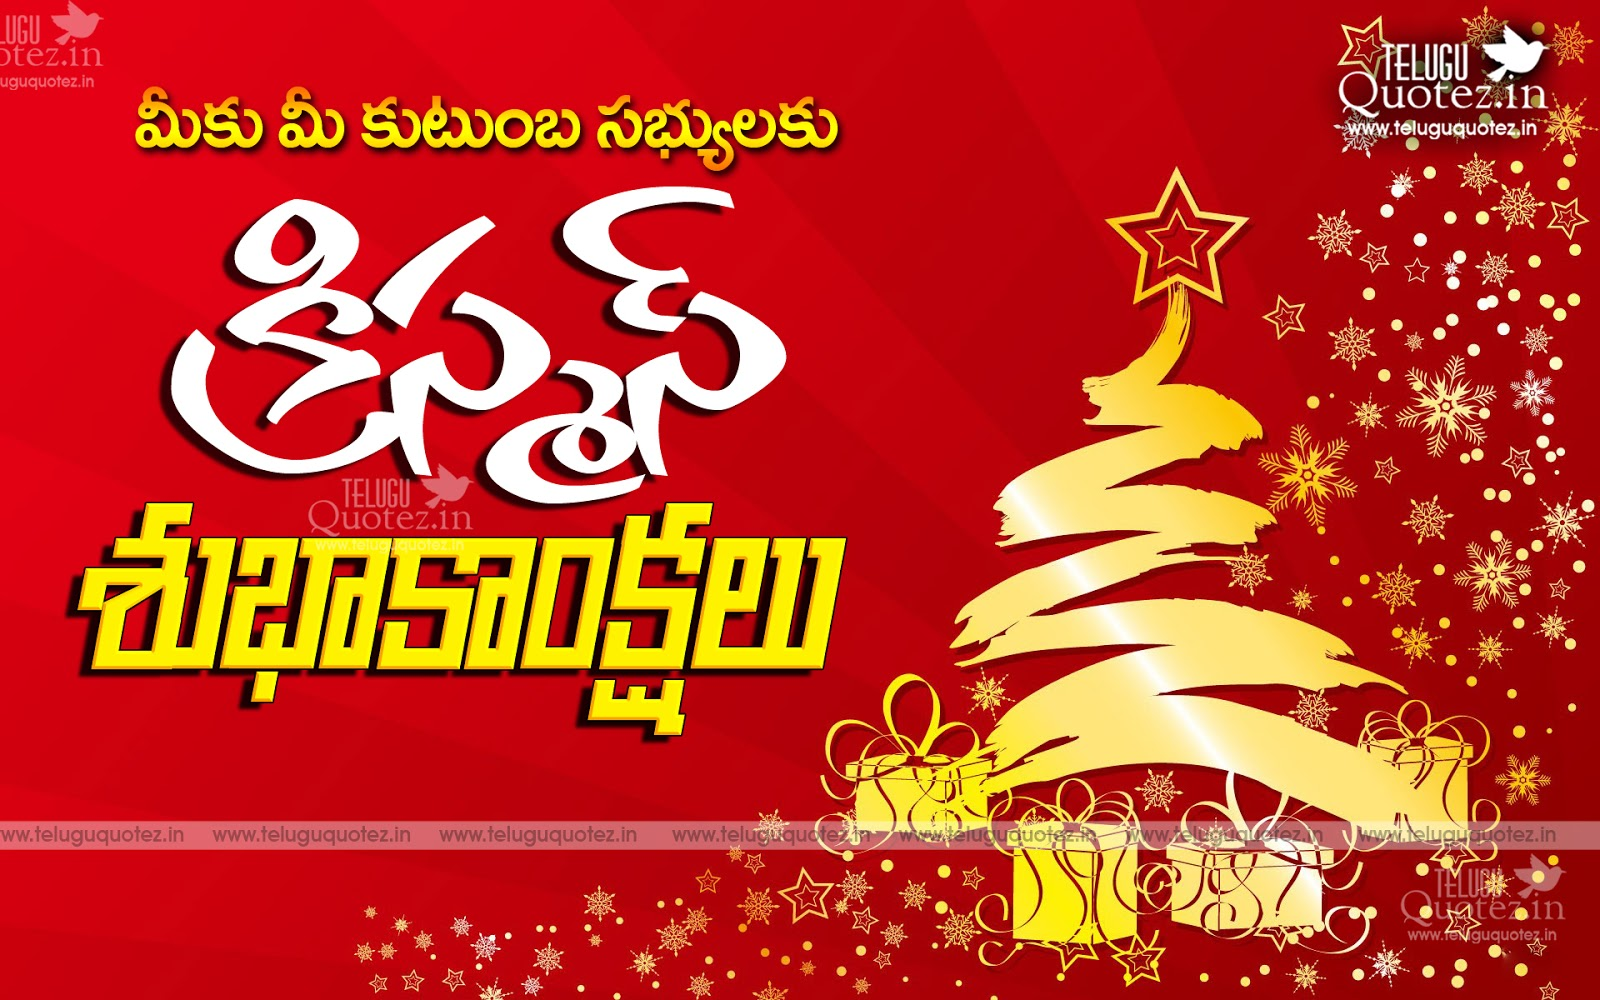 Christmas telugu quotes images all ideas about christmas and 19 happy christamas telugu greetings and quotes hd images teluguquotez tel kristyandbryce Image collections